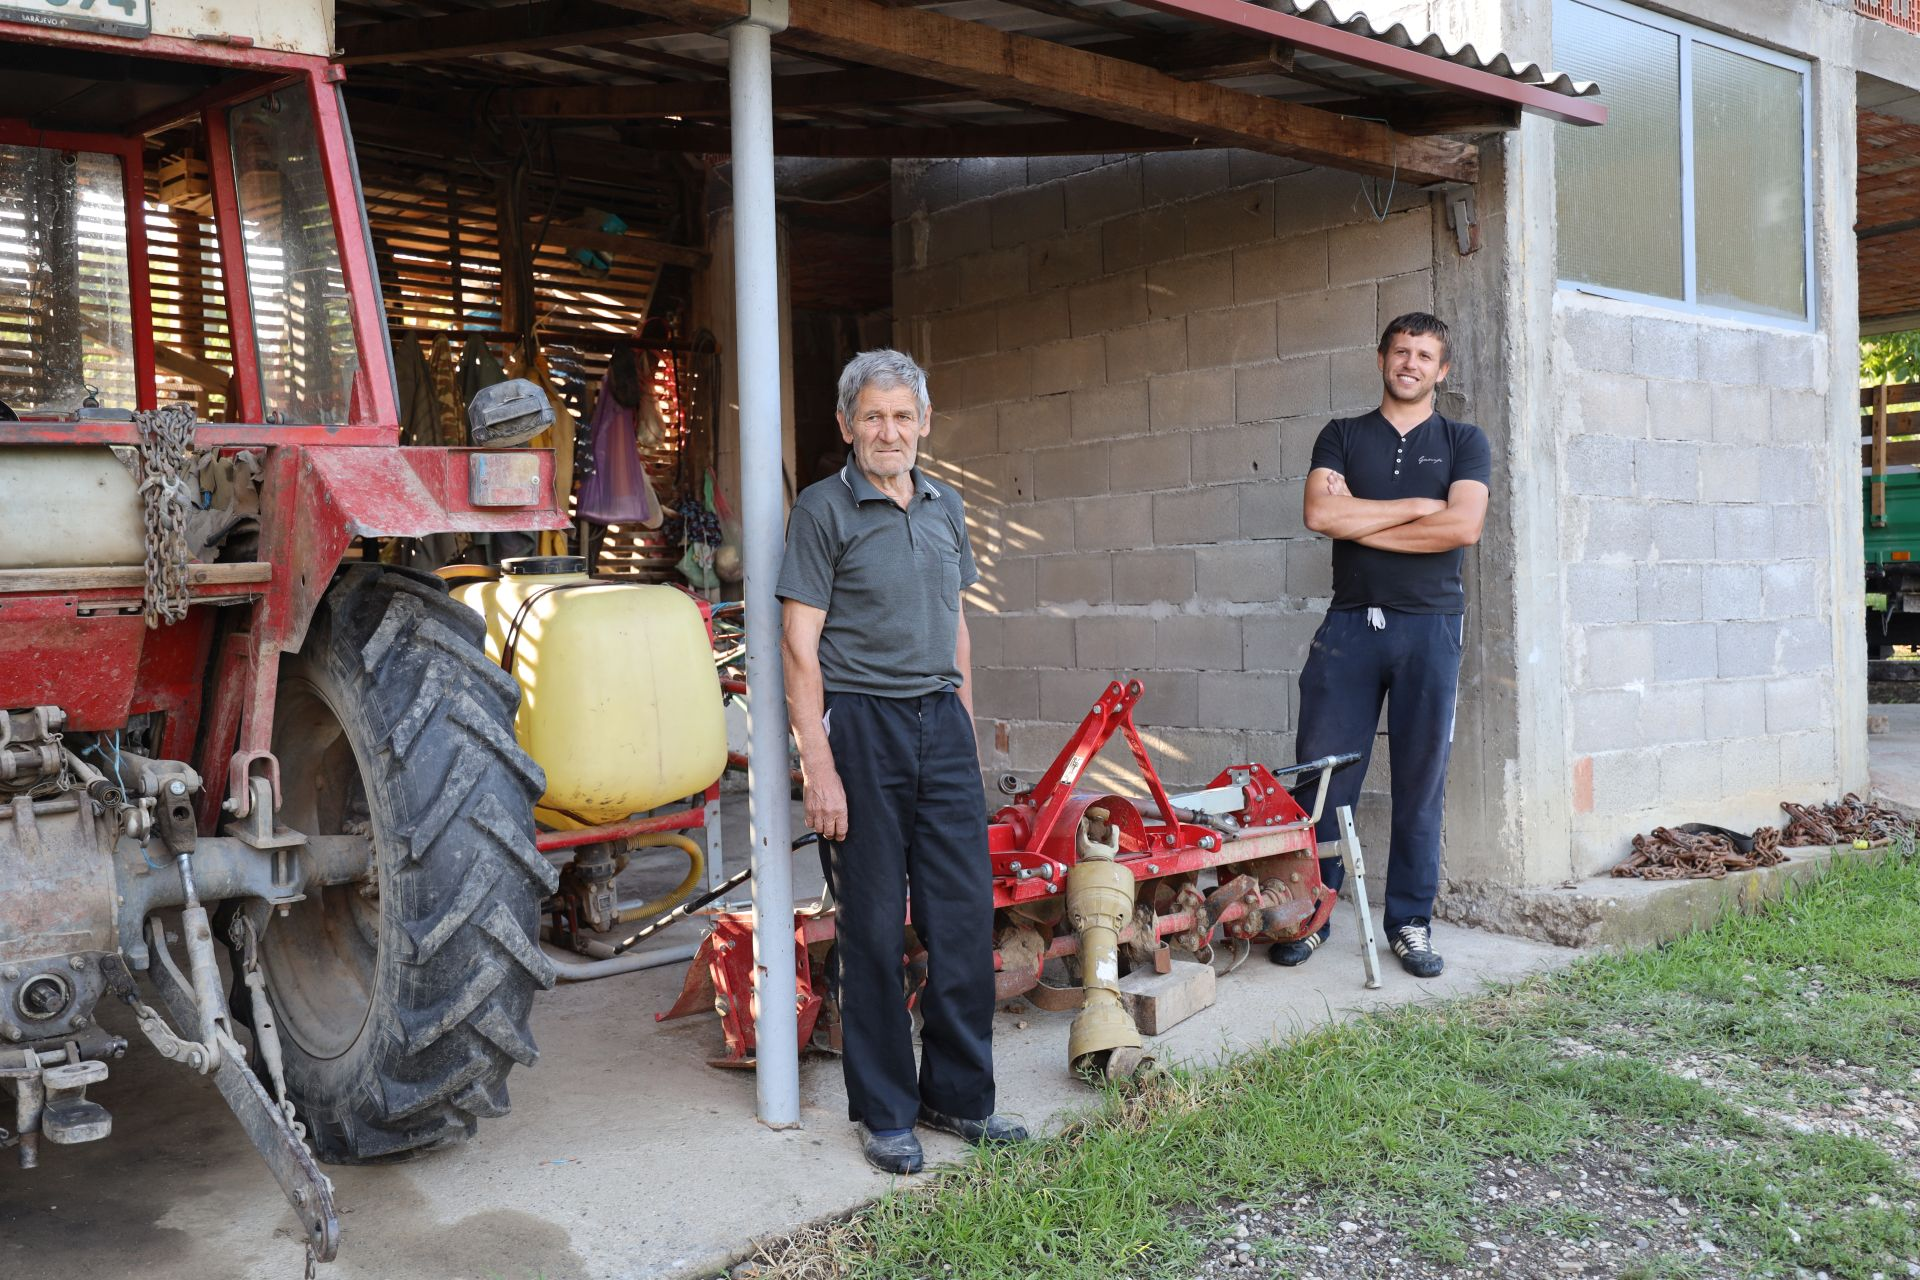 Ratko and his grandson Radislav stand by the donated tools